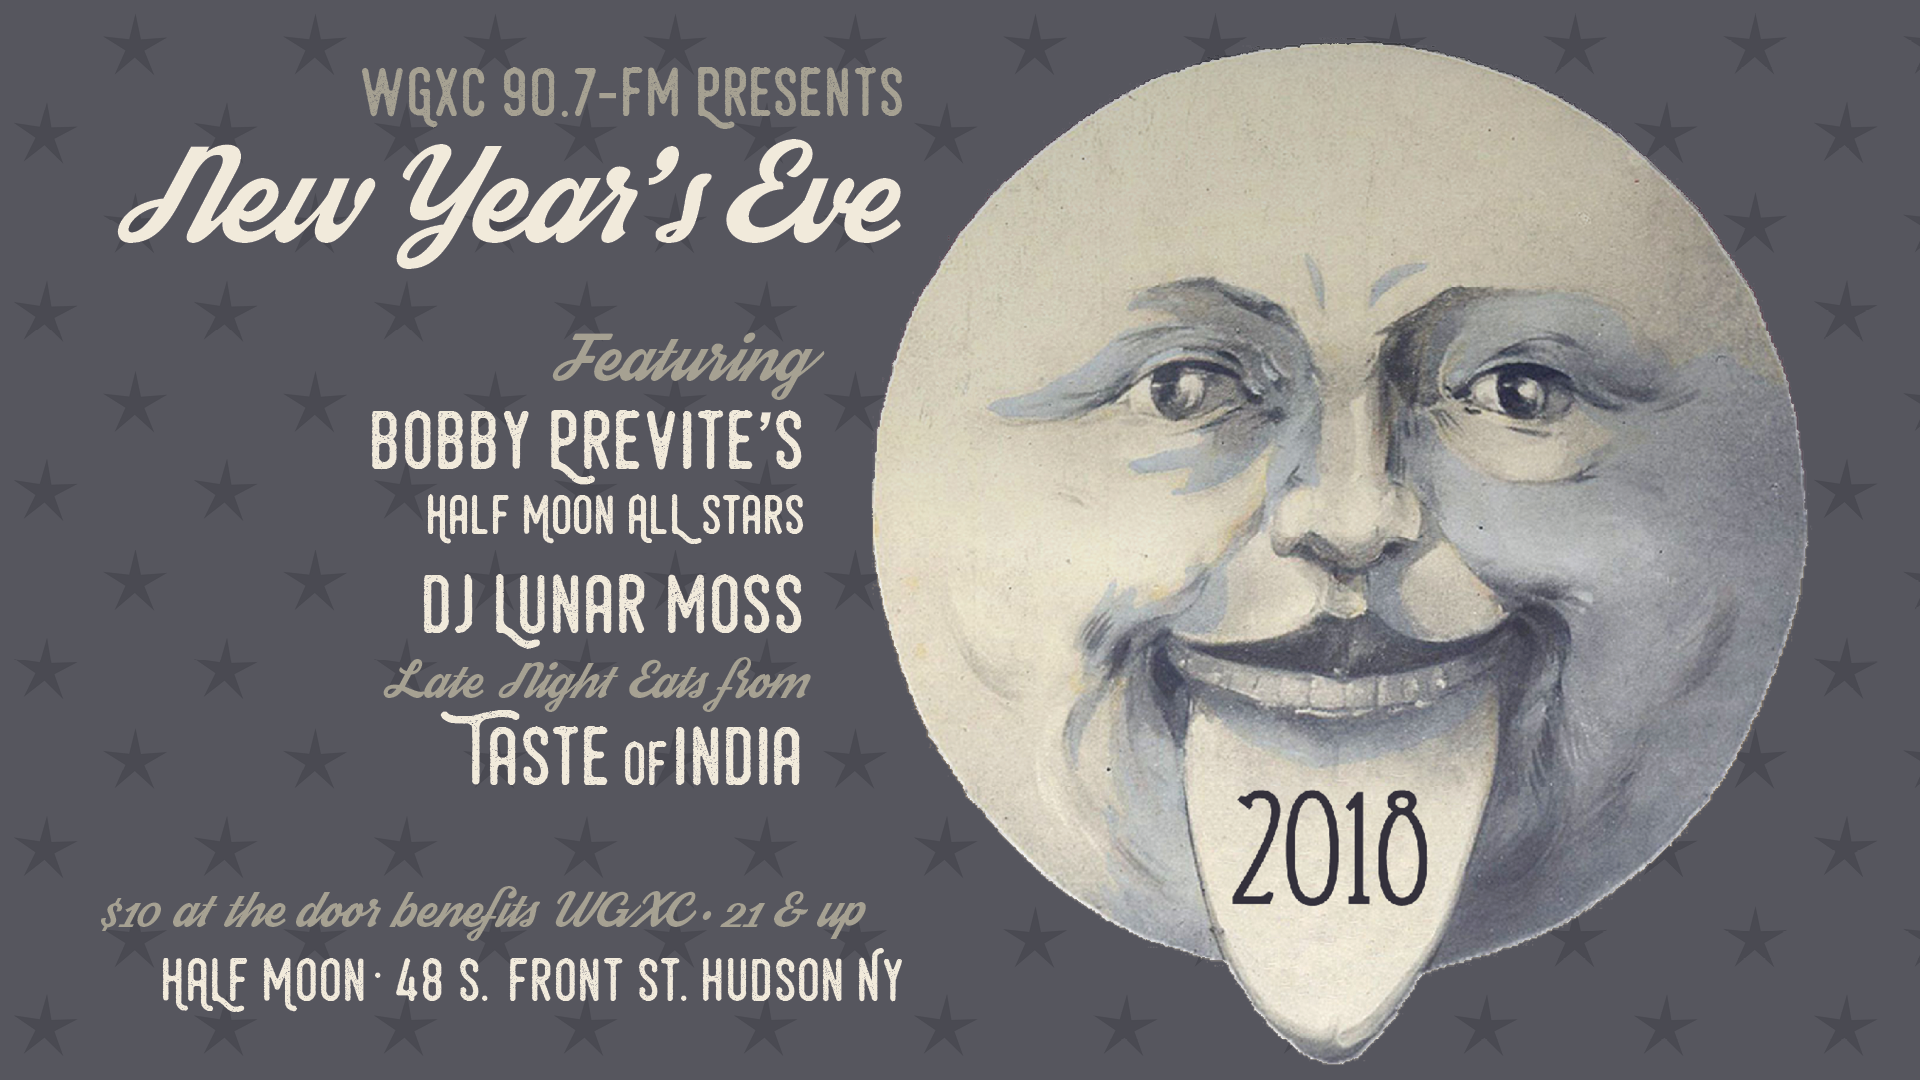 wgxc invites all to ring in the new year at half moon hudson this is the fifth year of the annual fundraising bash and features bobby previte and friends